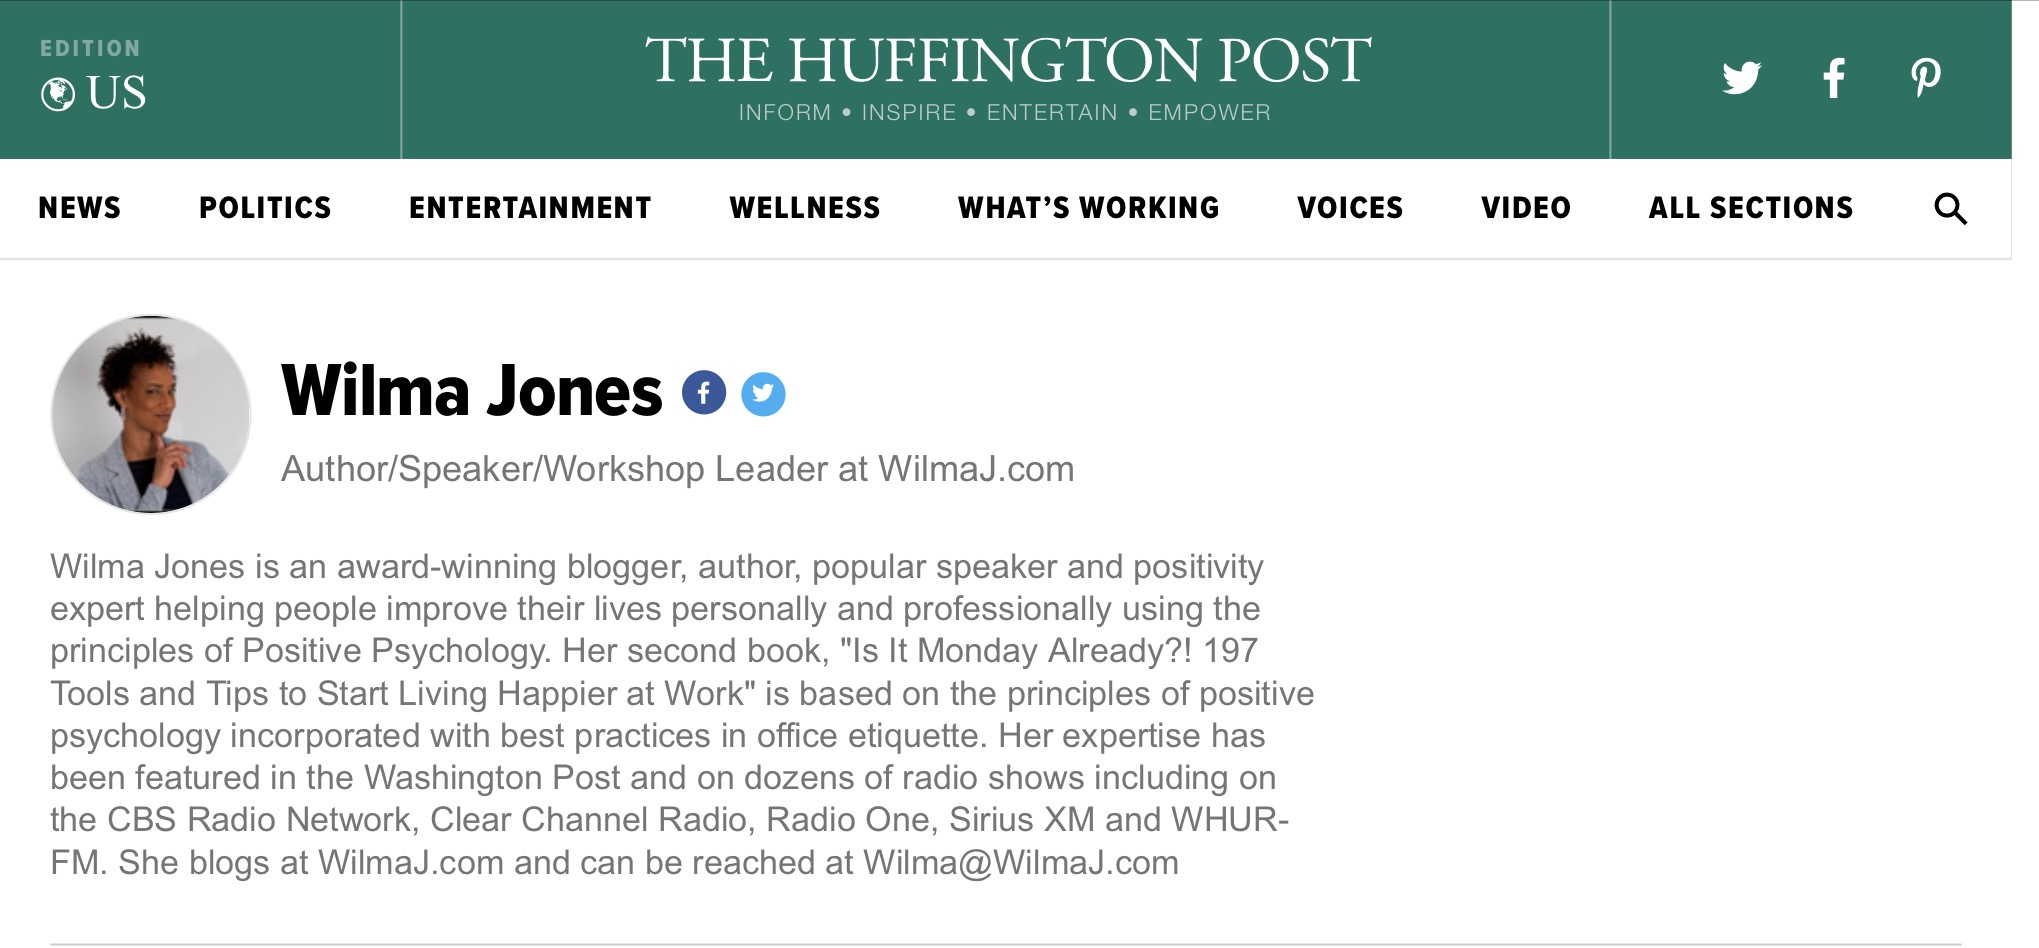 wilma jones huff post page link